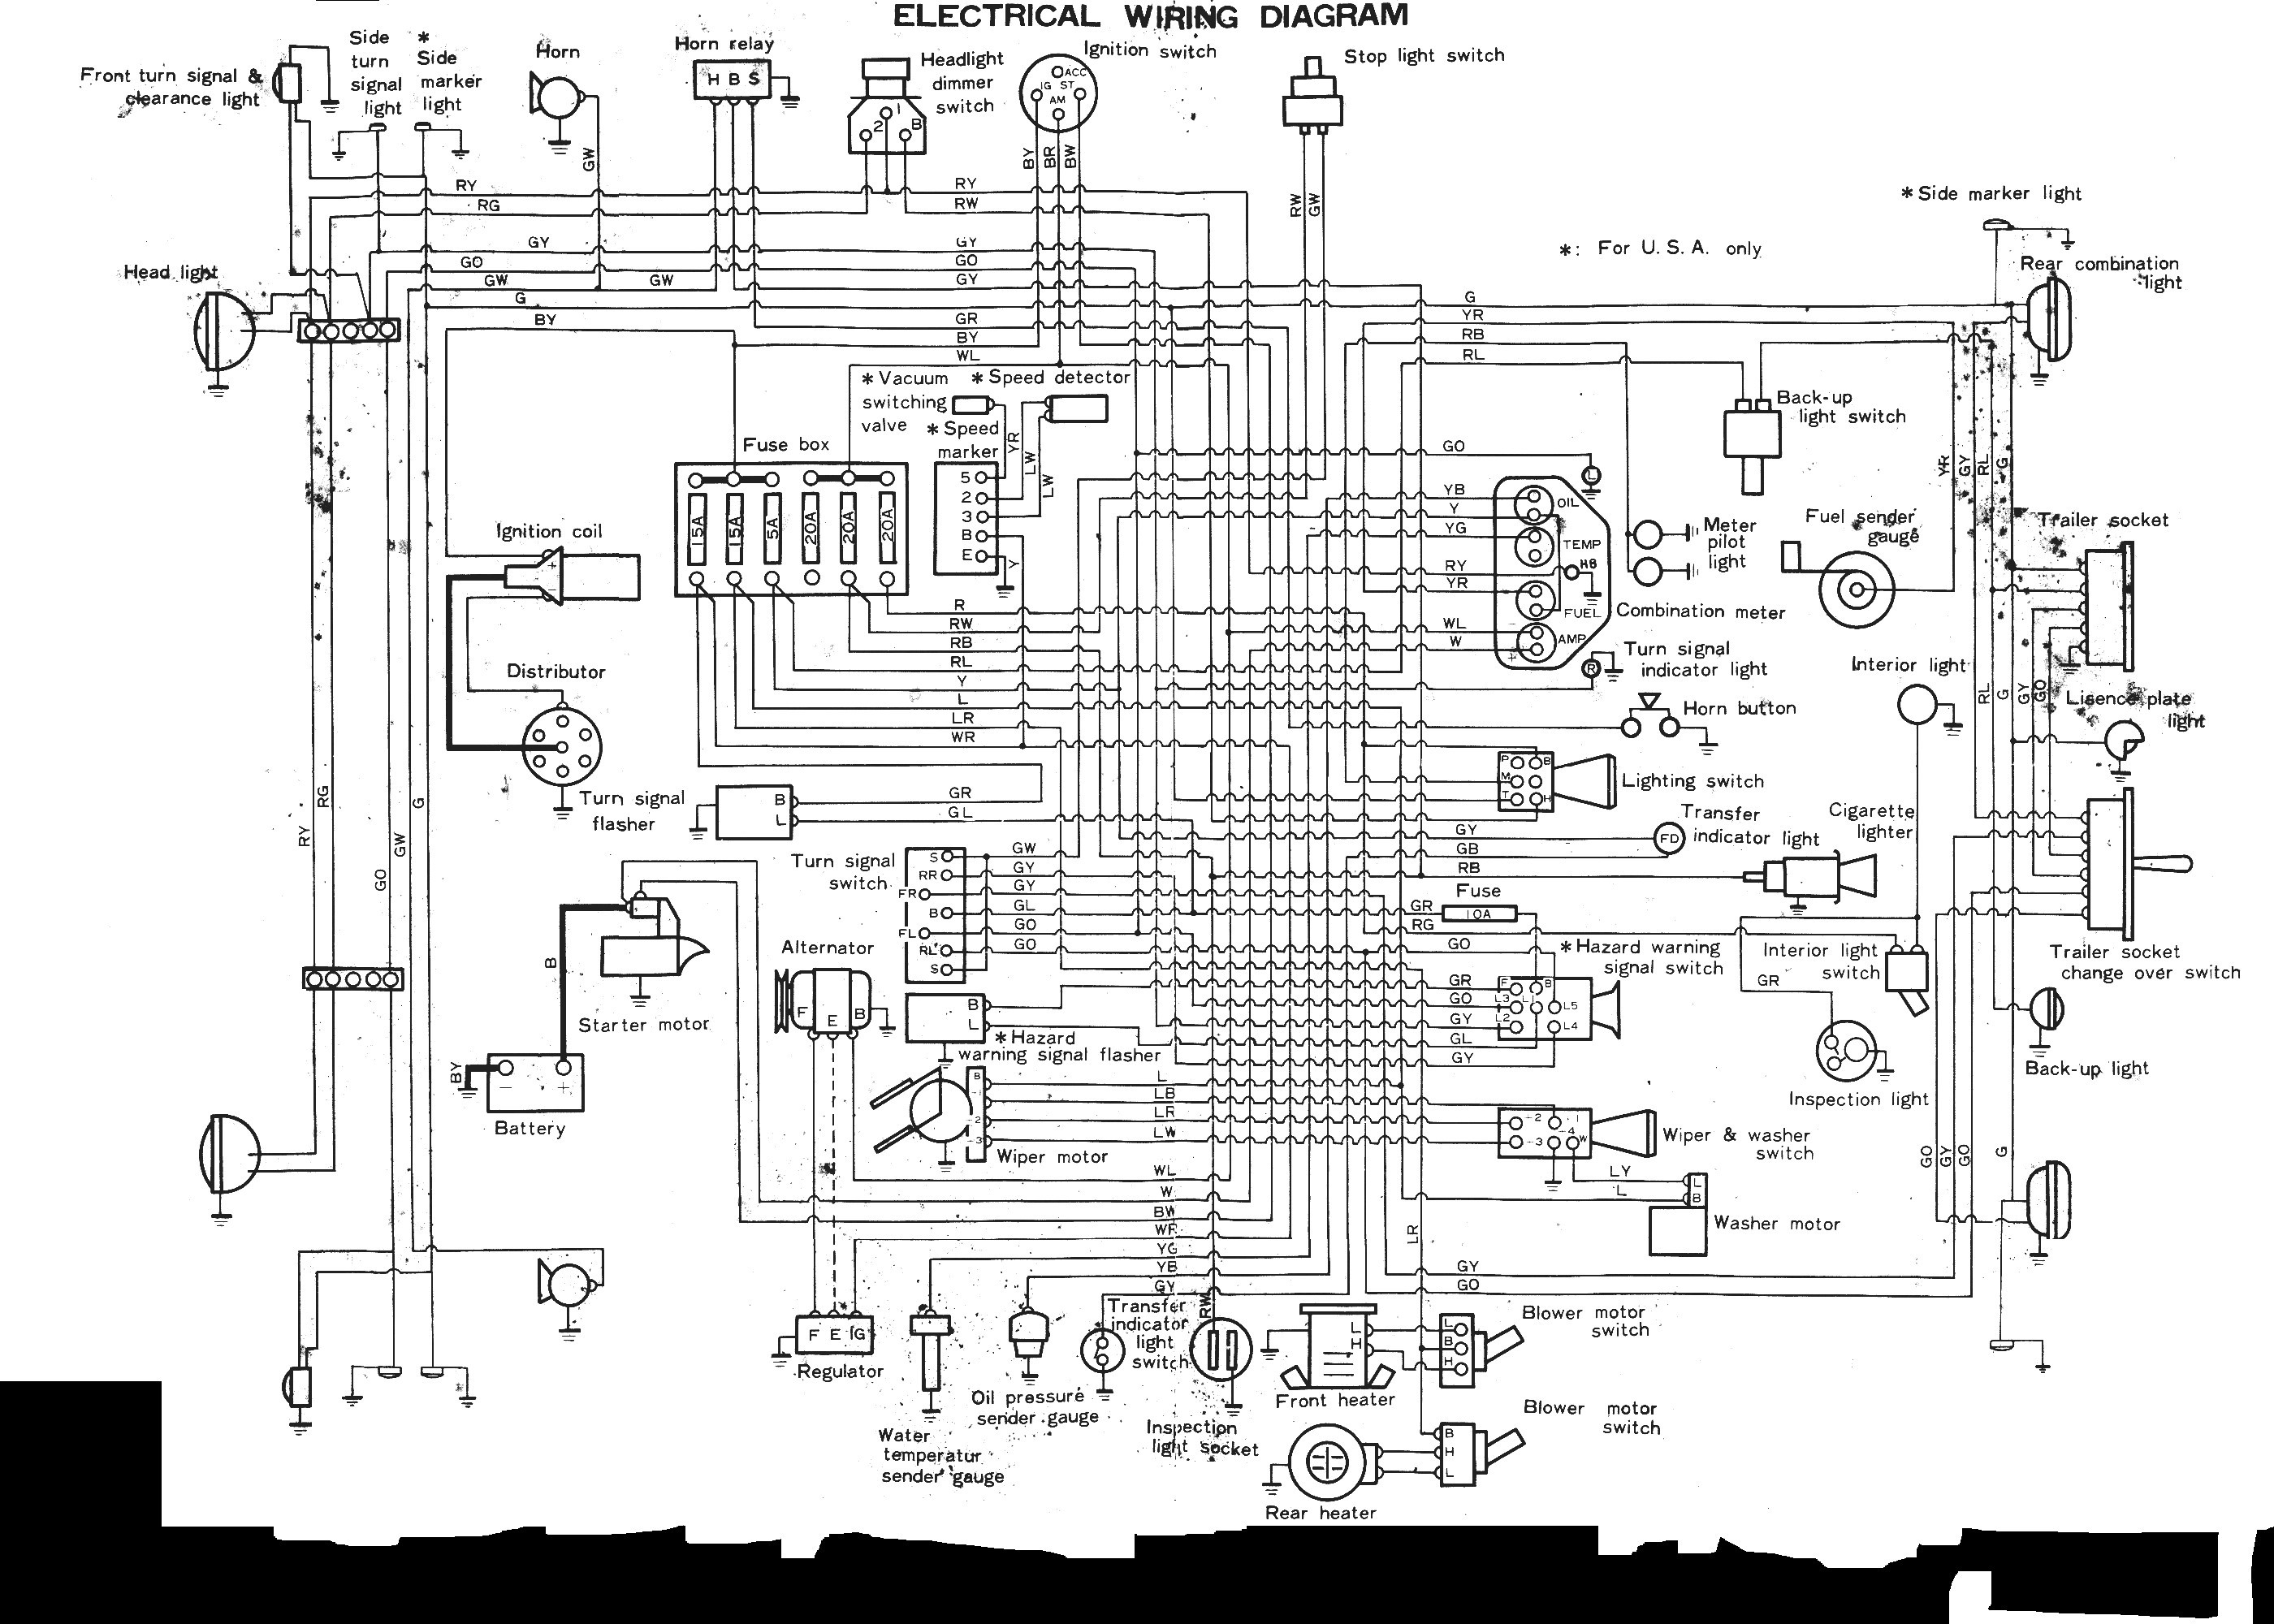 toyota forklift wiring diagram download  diagram of electric forklift wiring